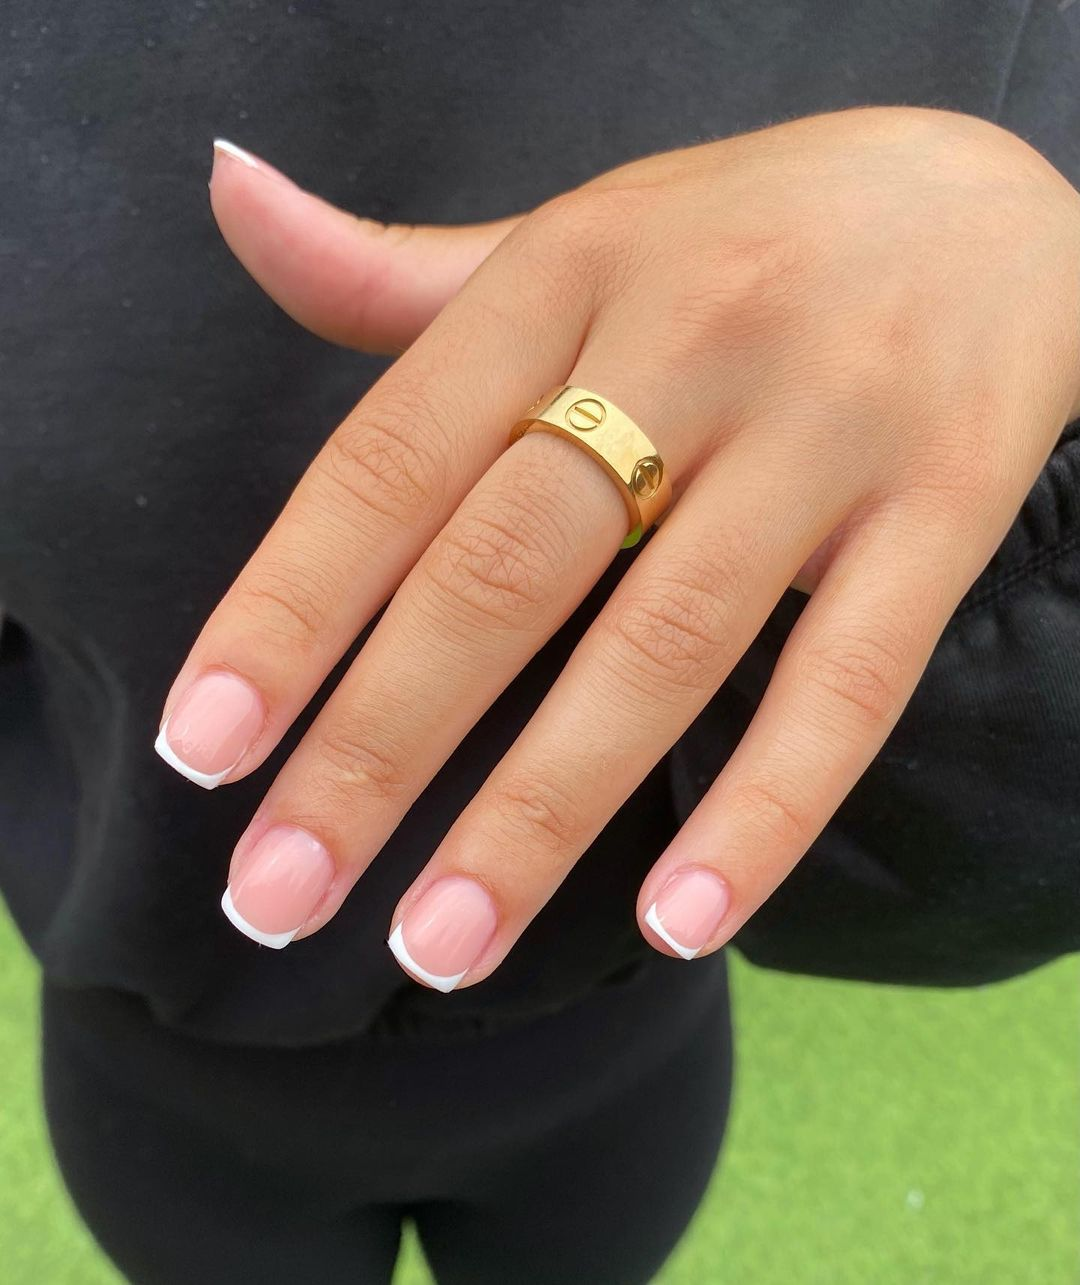 French Manicure Designs for Short Nails